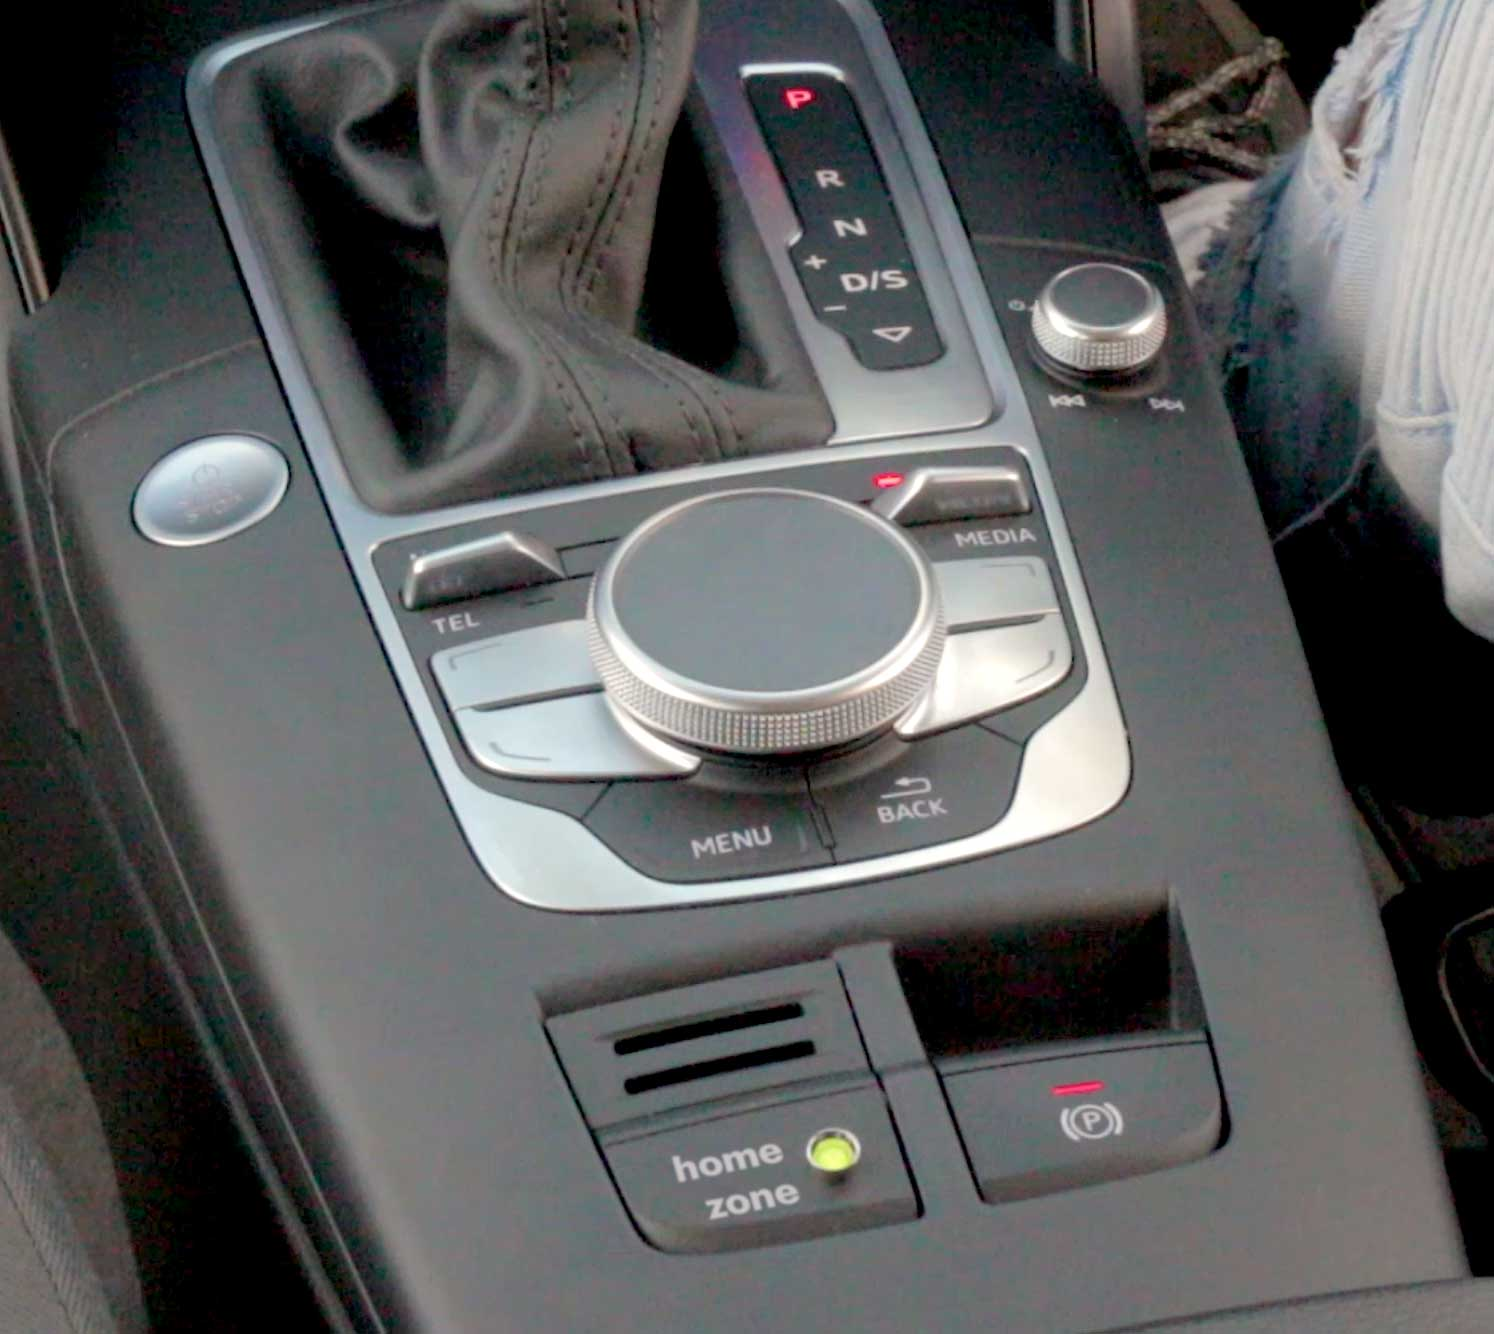 e-tron centre console with Home Zone LED